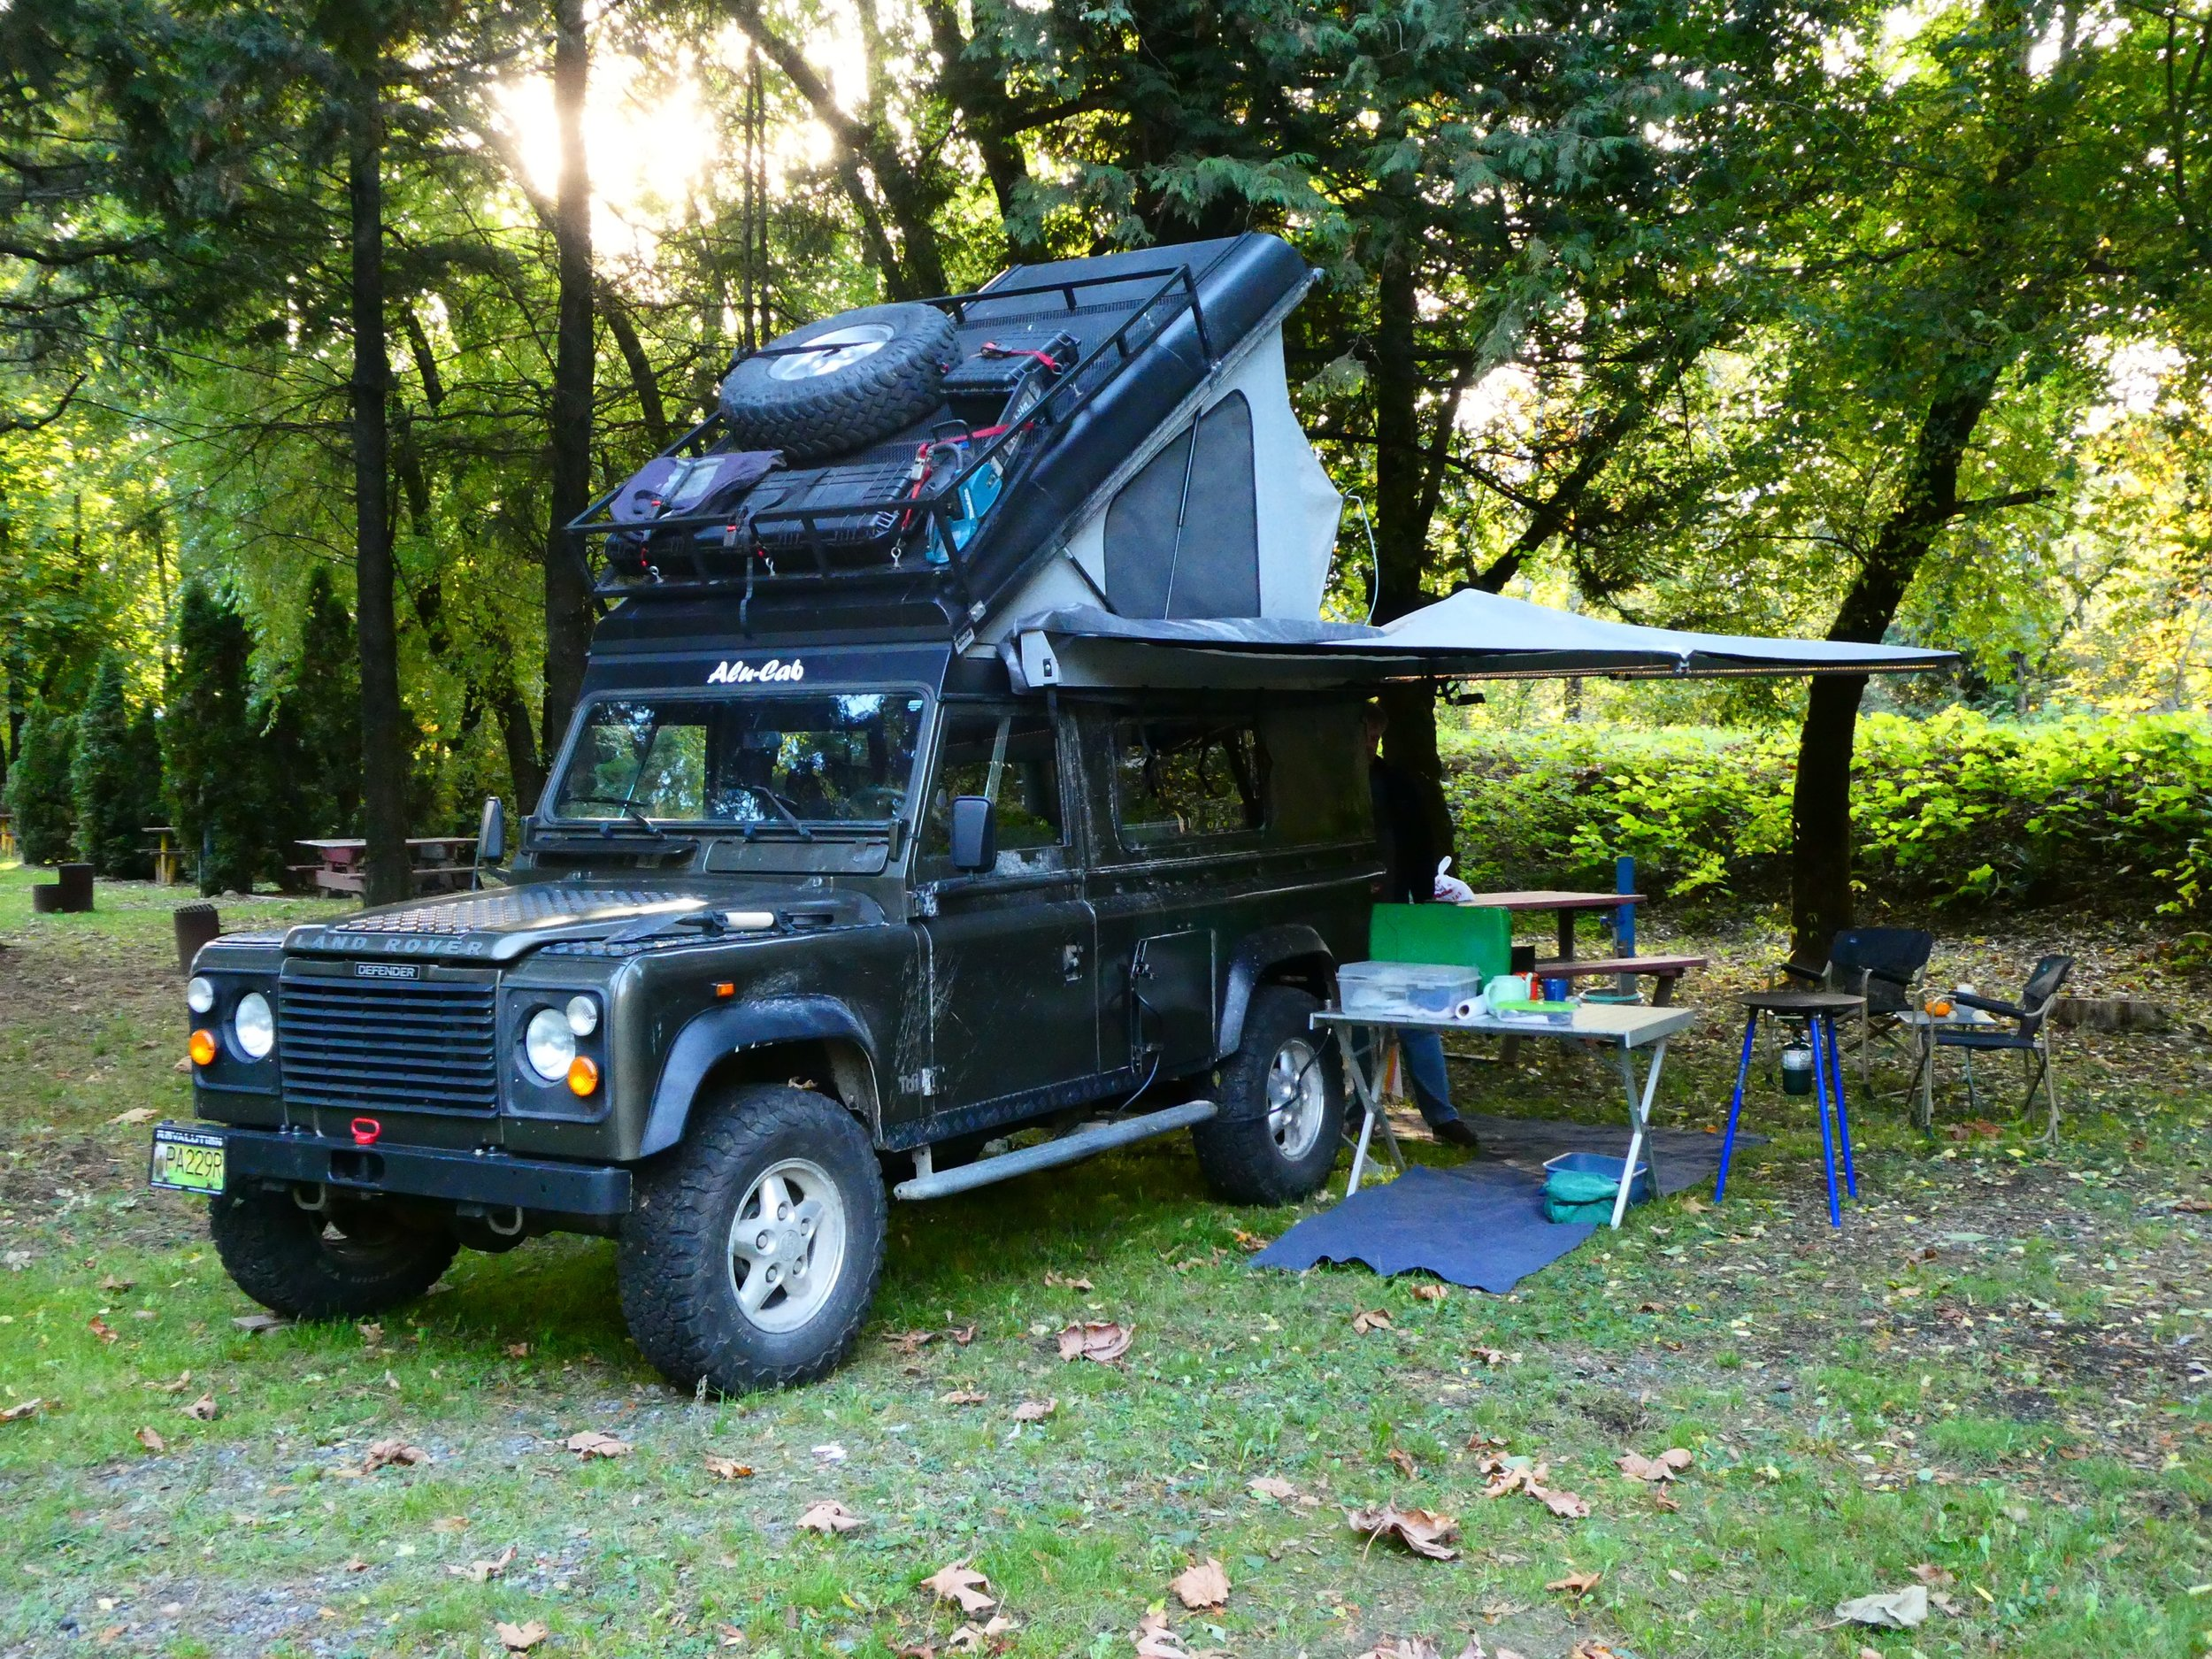 Meet David's 1995 Land Rover Defender 'Fitz', named because everything fits! This particular Land Rover was originally a military truck on the British Army base in Suffield, Alberta, which was used as their desert training area. When they decided to embark on a global overland trip we weighed the pros and cons of many vehicle configurations, of course each having to be a compromise in some way. They selected the 3 - door Defender 110 because of its off-road capability, its narrow width, its interior storage area and its easy configurability due to the bolt-together construction.The Land Rover's simplistic design and non-electronic powertrain make it easy to fix on the side of the road with basic hand tools. Reliability can be significantly improved by proper selection of replacement parts but admittedly you need to be prepared to do some DIY mechanics on any overland adventure. They continue to take the truck on limited (2-3 week) shakedown trips in anticipation to full time travel starting in 2020.